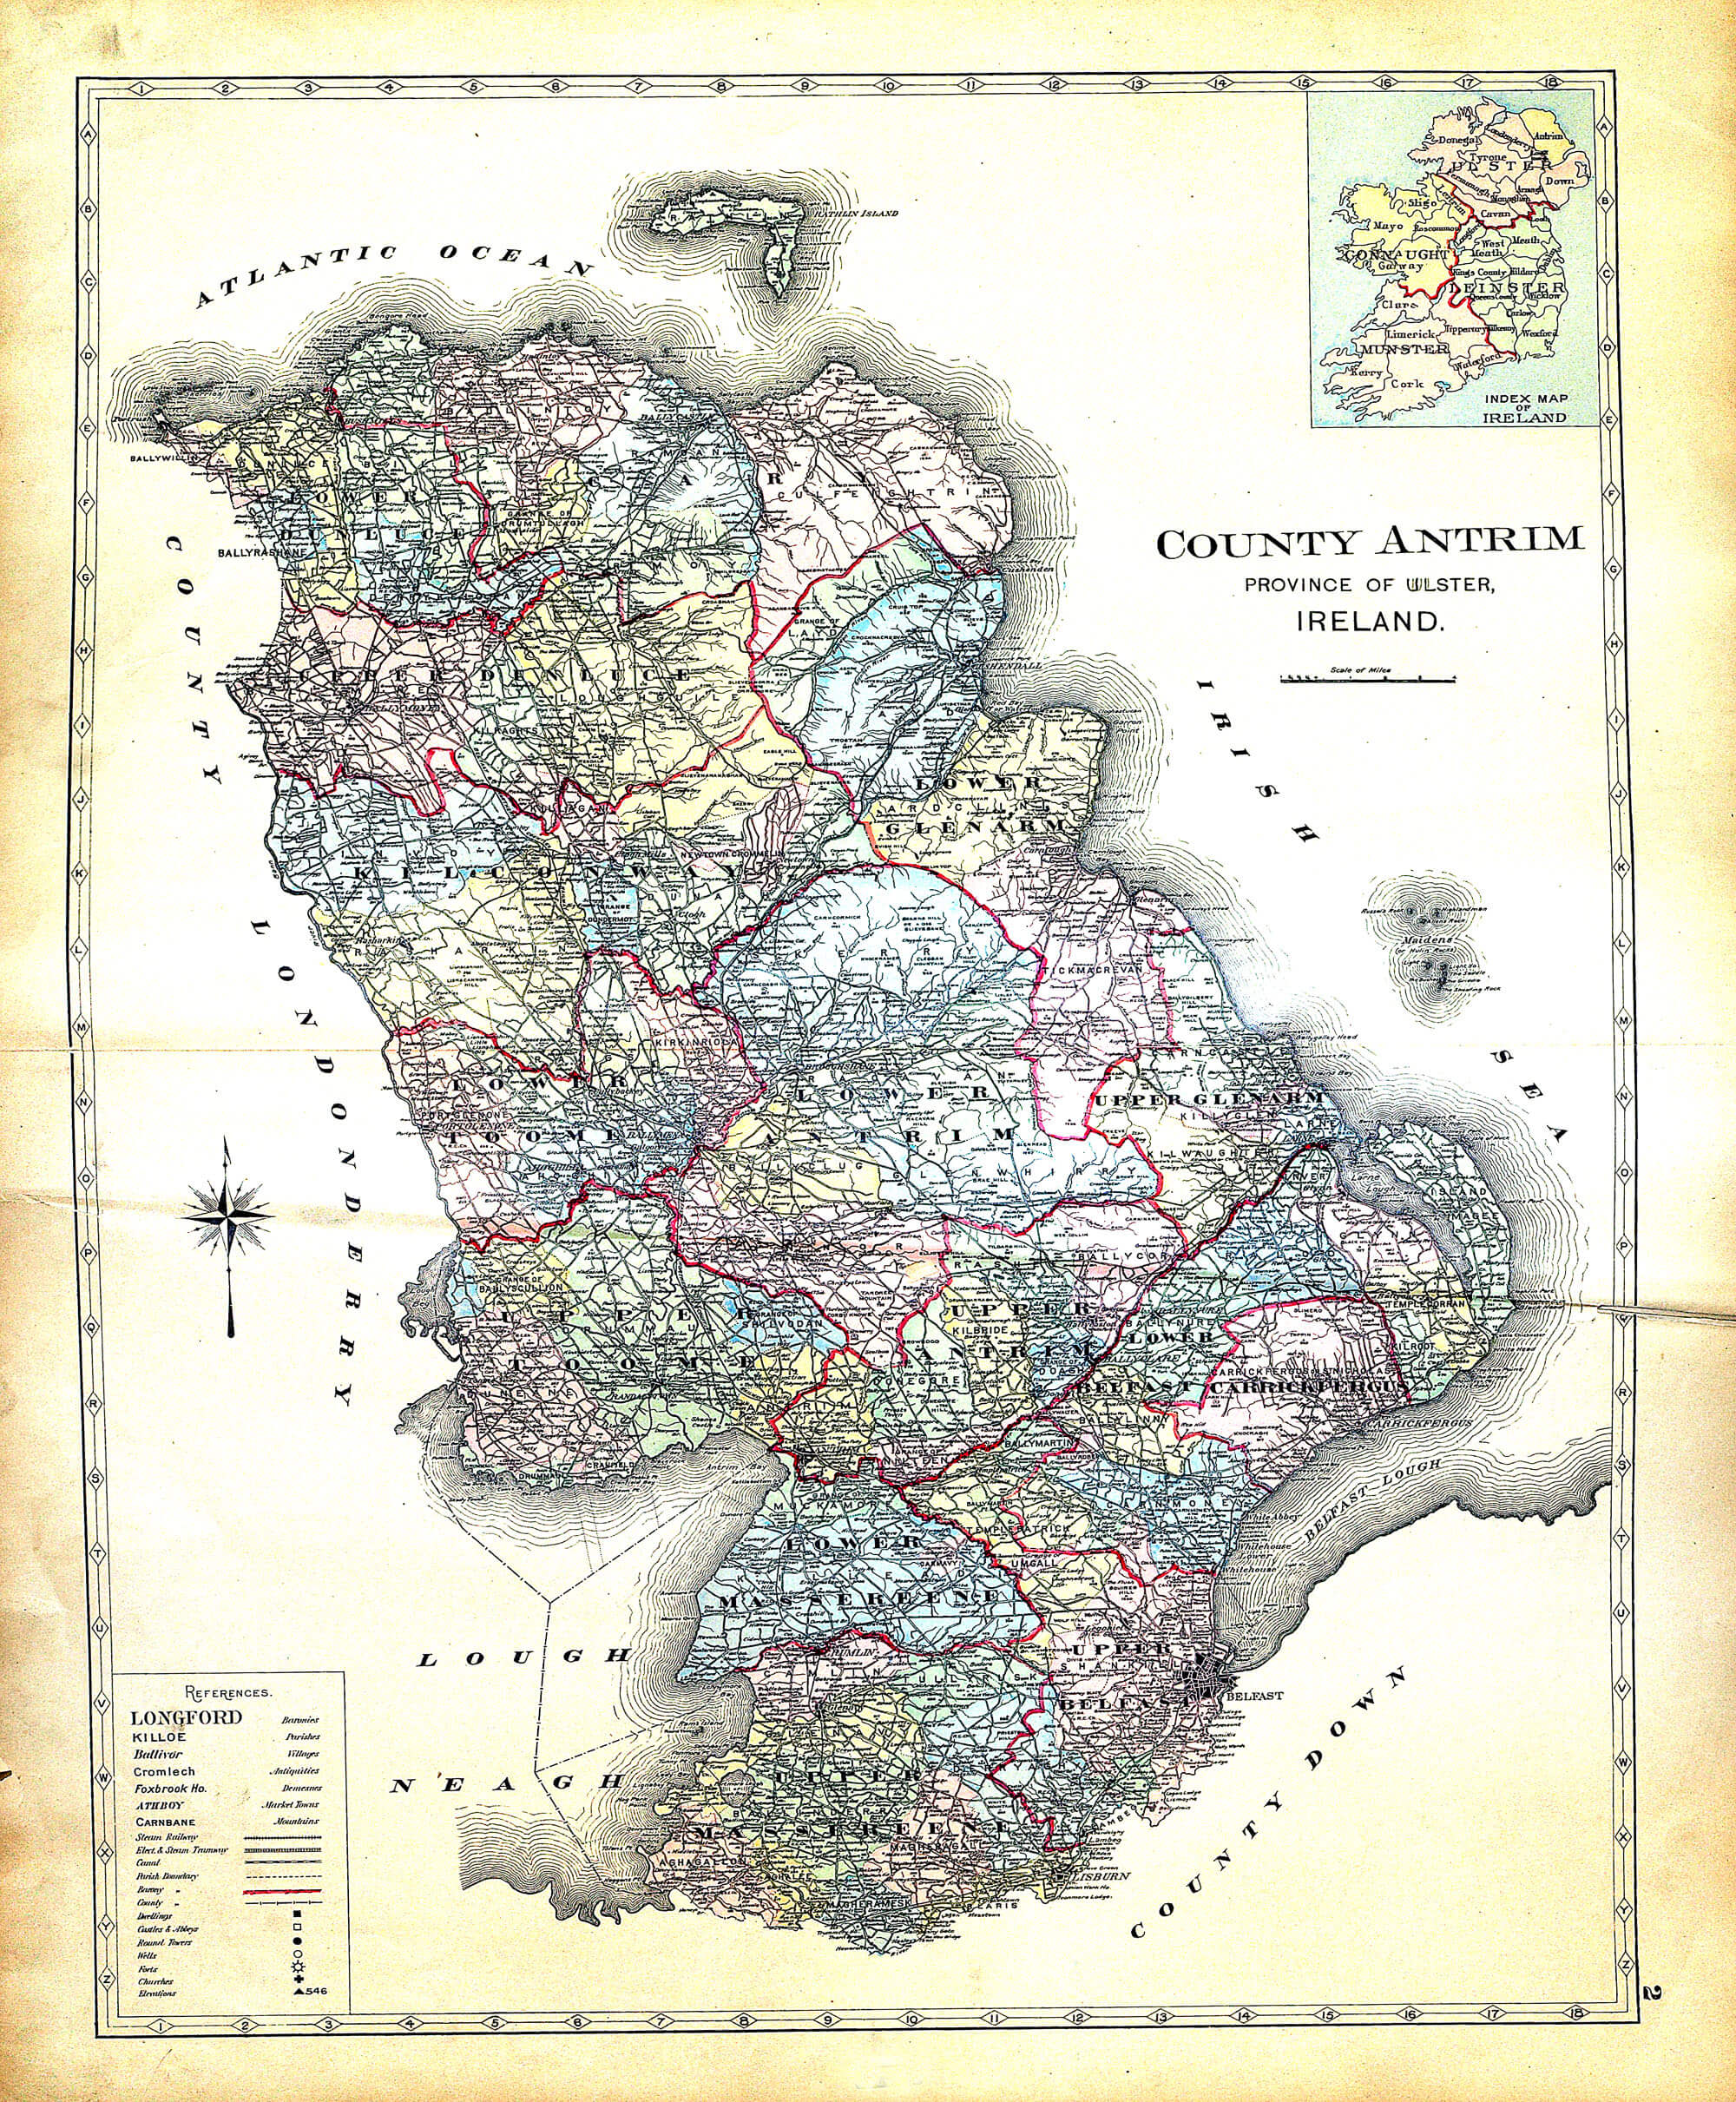 Ireland and Counties Maps A-31 – Richards 1901 – L Brown Collection